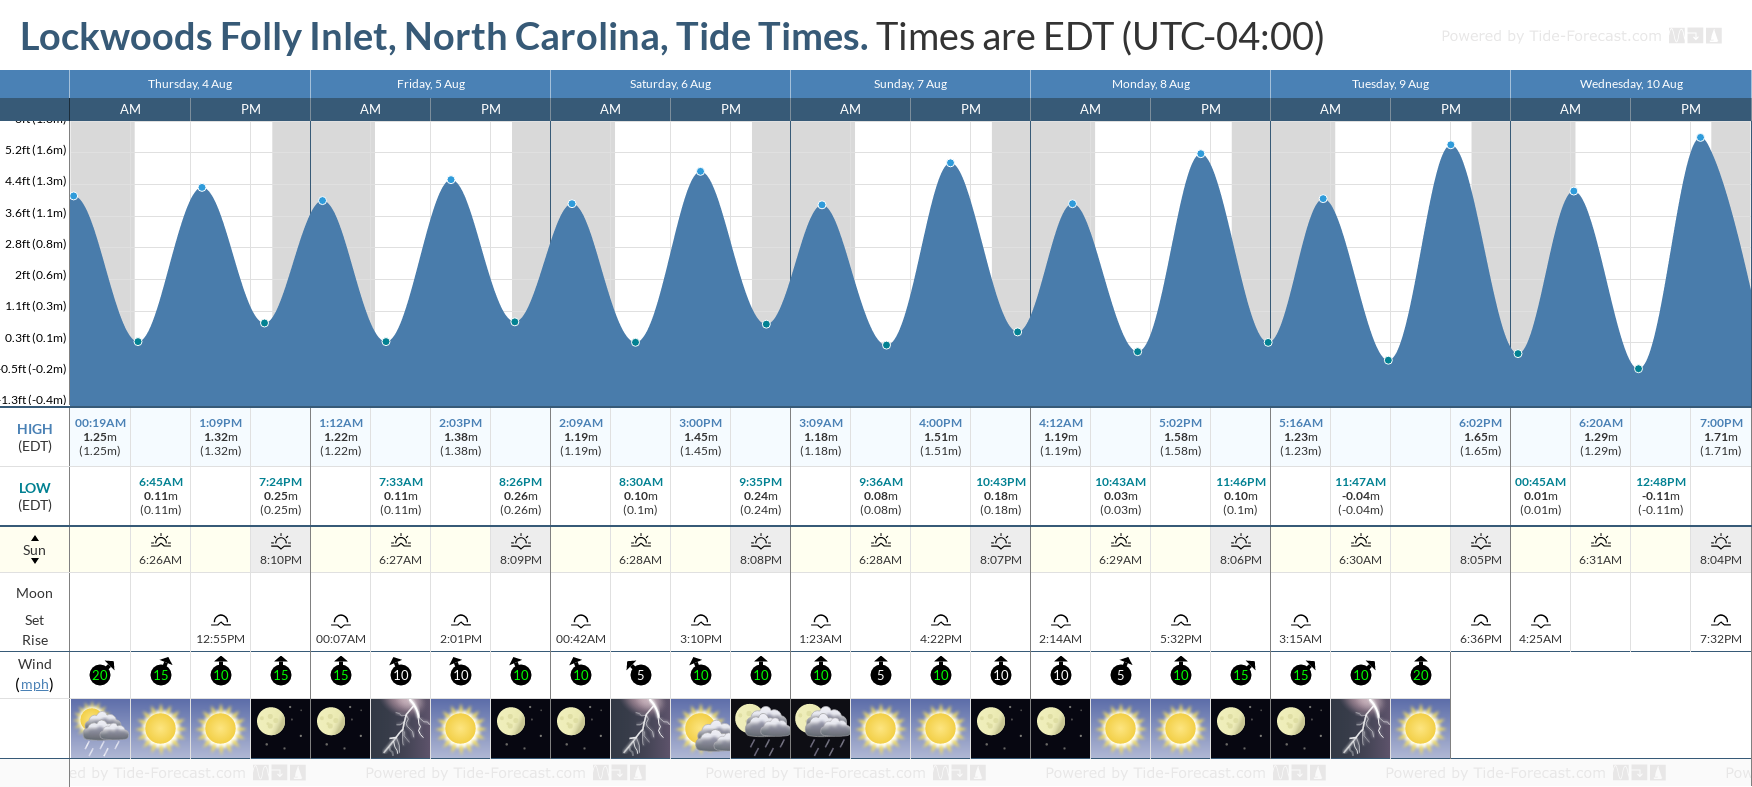 Lockwoods Folly Inlet, North Carolina Tide Chart including high and low tide tide times for the next 7 days